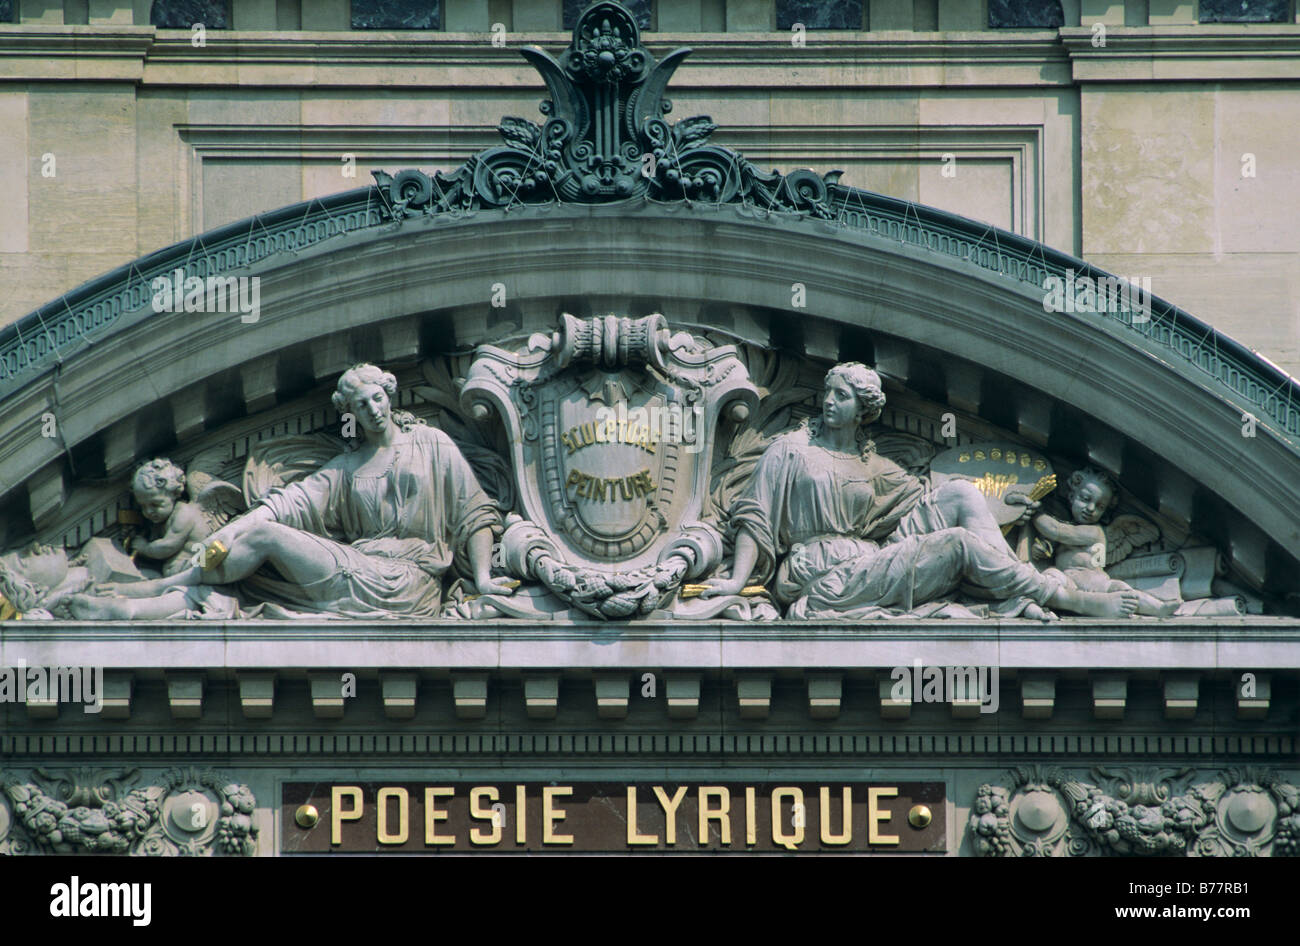 Facade detail of the Opéra Garnier, half arch with relief to Sculpture and Painting above Poesie Lyrique, Paris, - Stock Image